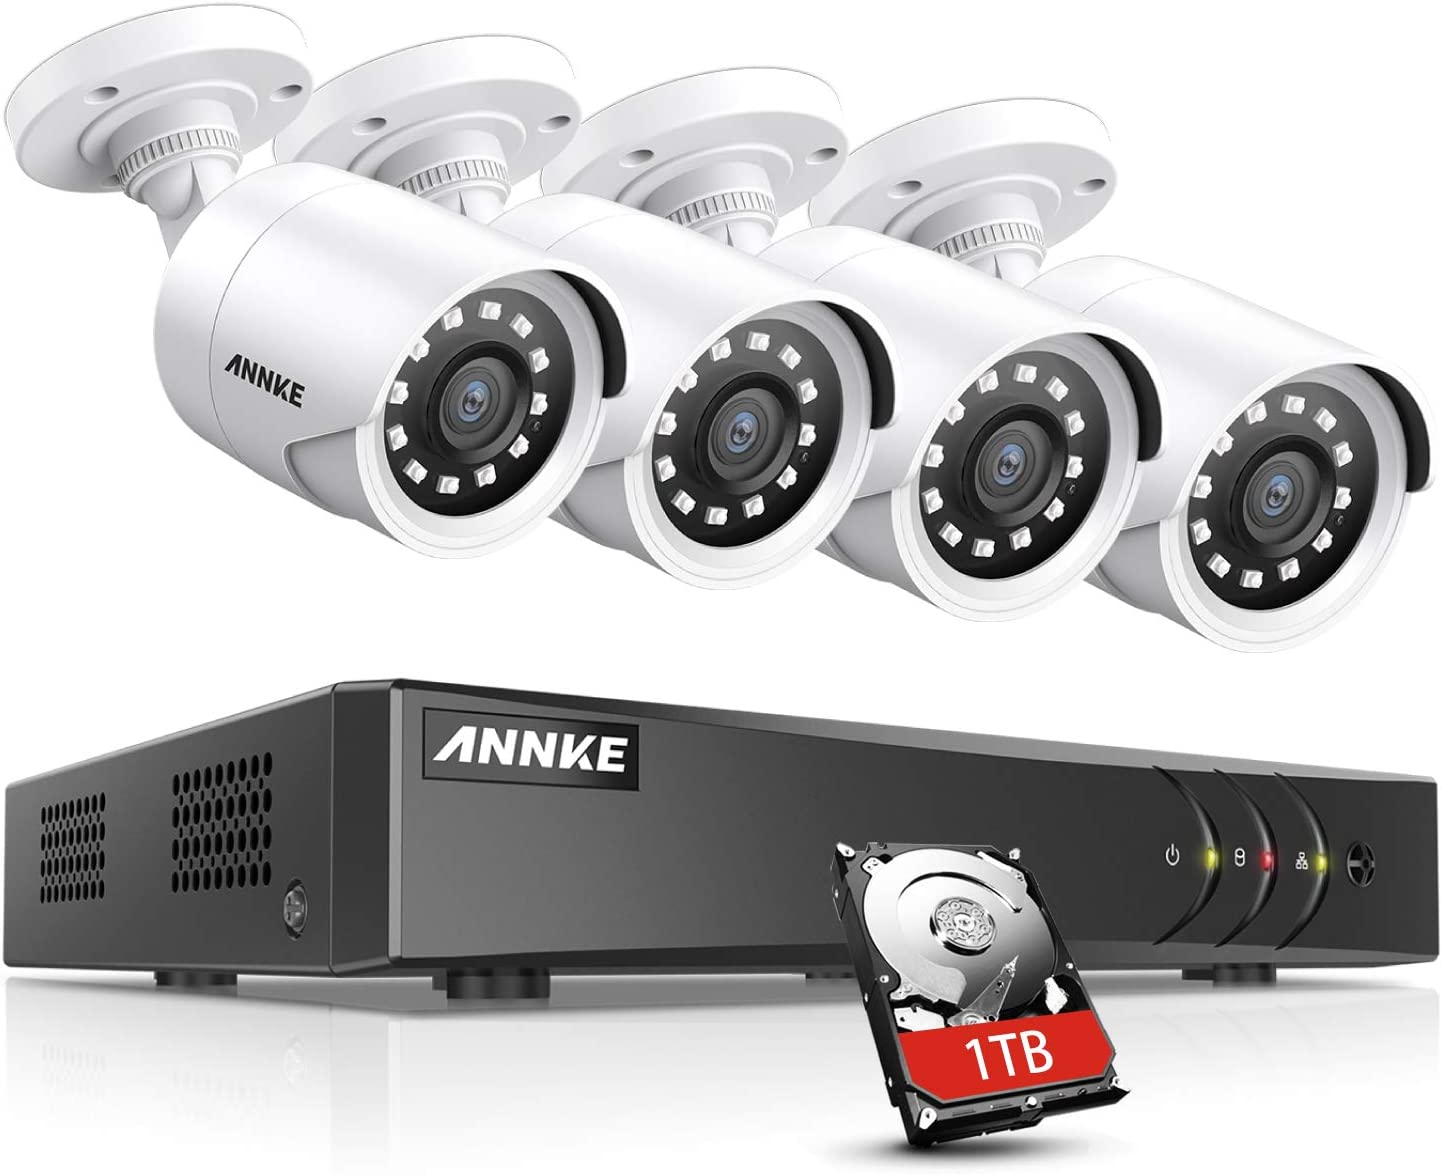 ANNKE Y200 8CH 1080P Security Camera System with 1TB Surveillance Hard Disk Drive Pre-Installed and (4) 1920TVL 2.0MP Weatherproof Cameras, Intelligent Motion Detection & Alerting Function